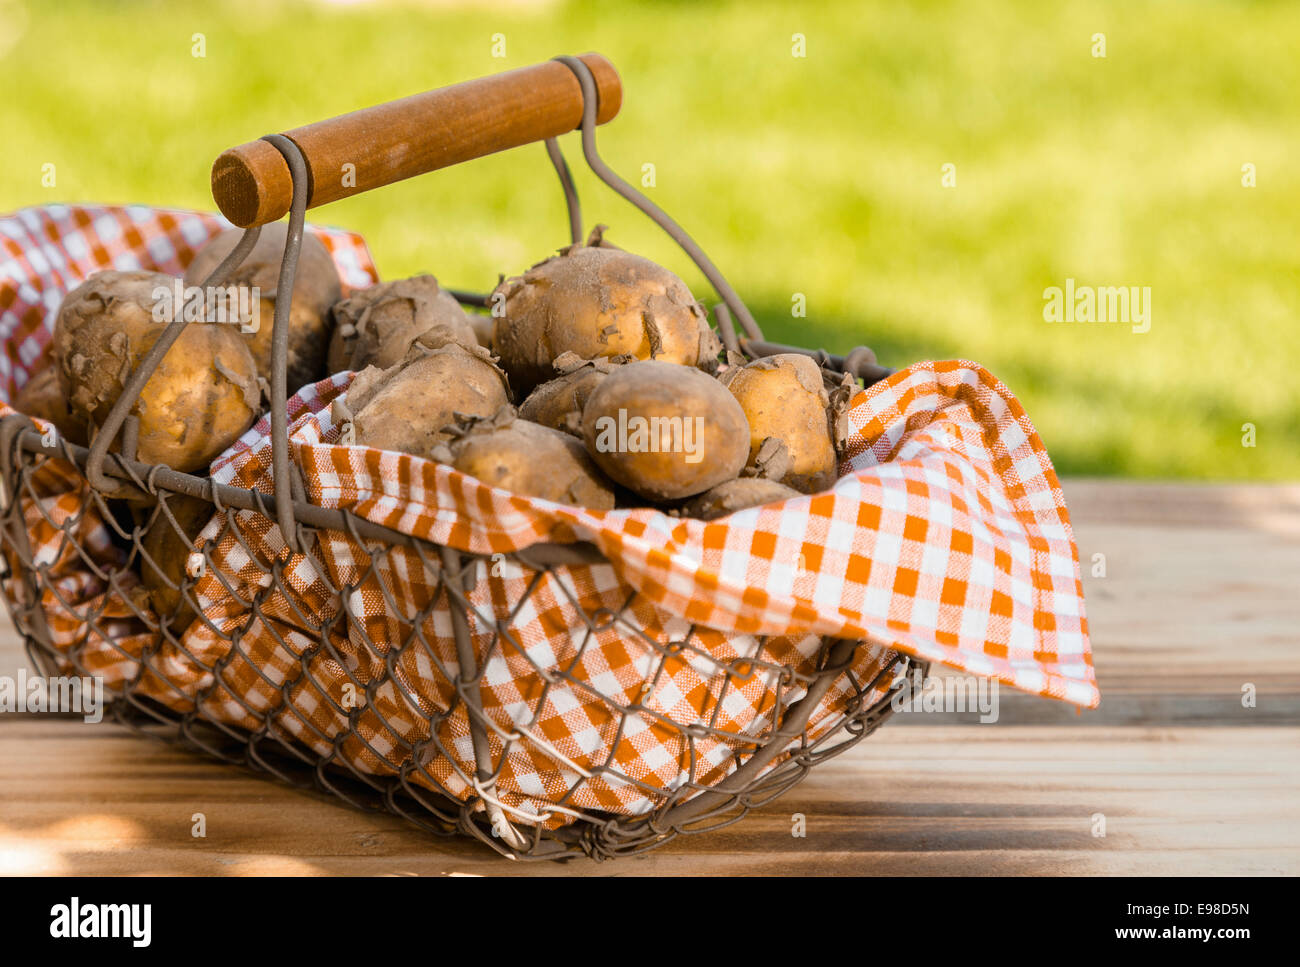 Rustic wire mesh basket, lined with checkered fabric and containing a fresh summer crop of new potatoes, placed - Stock Image